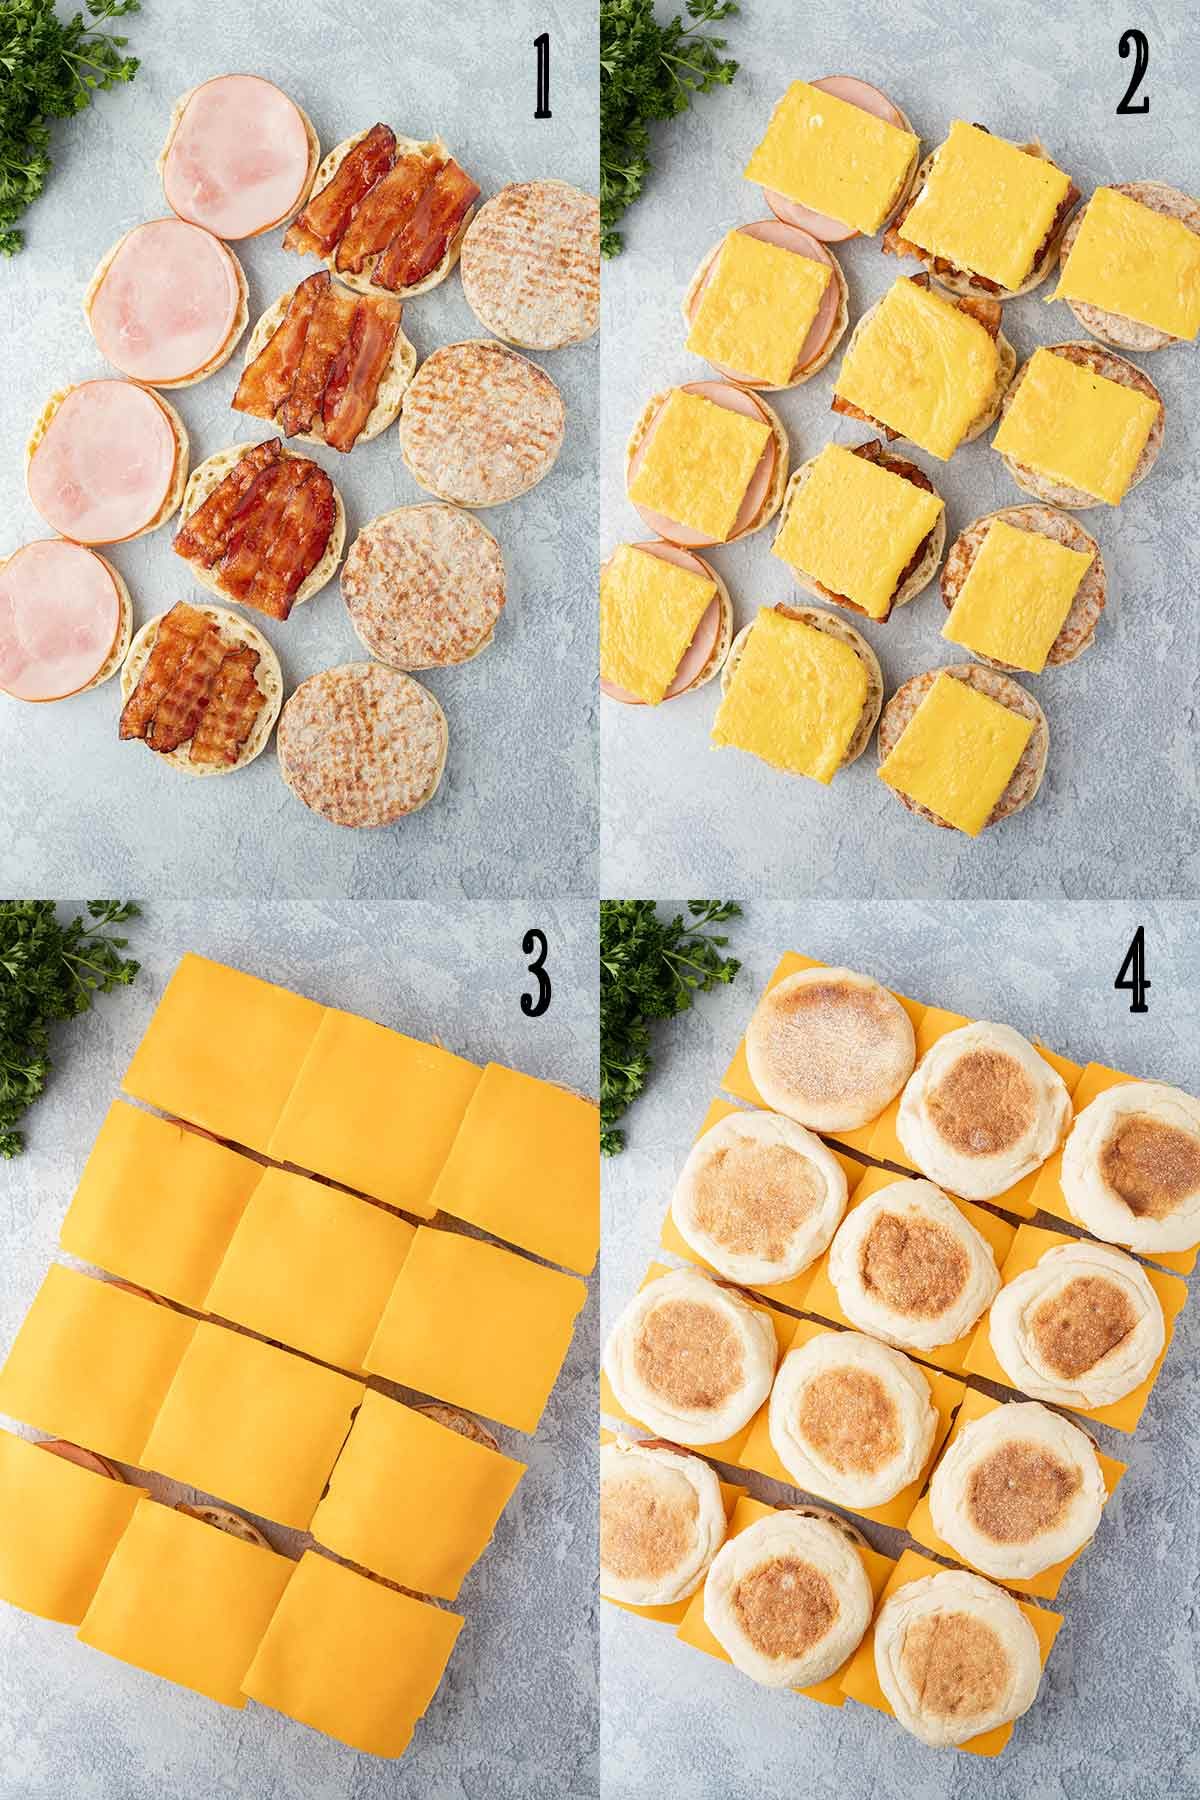 Collage of four photos showing the steps needed to assemble the sandwiches, including adding the meat, then the eggs, then the cheese slices.